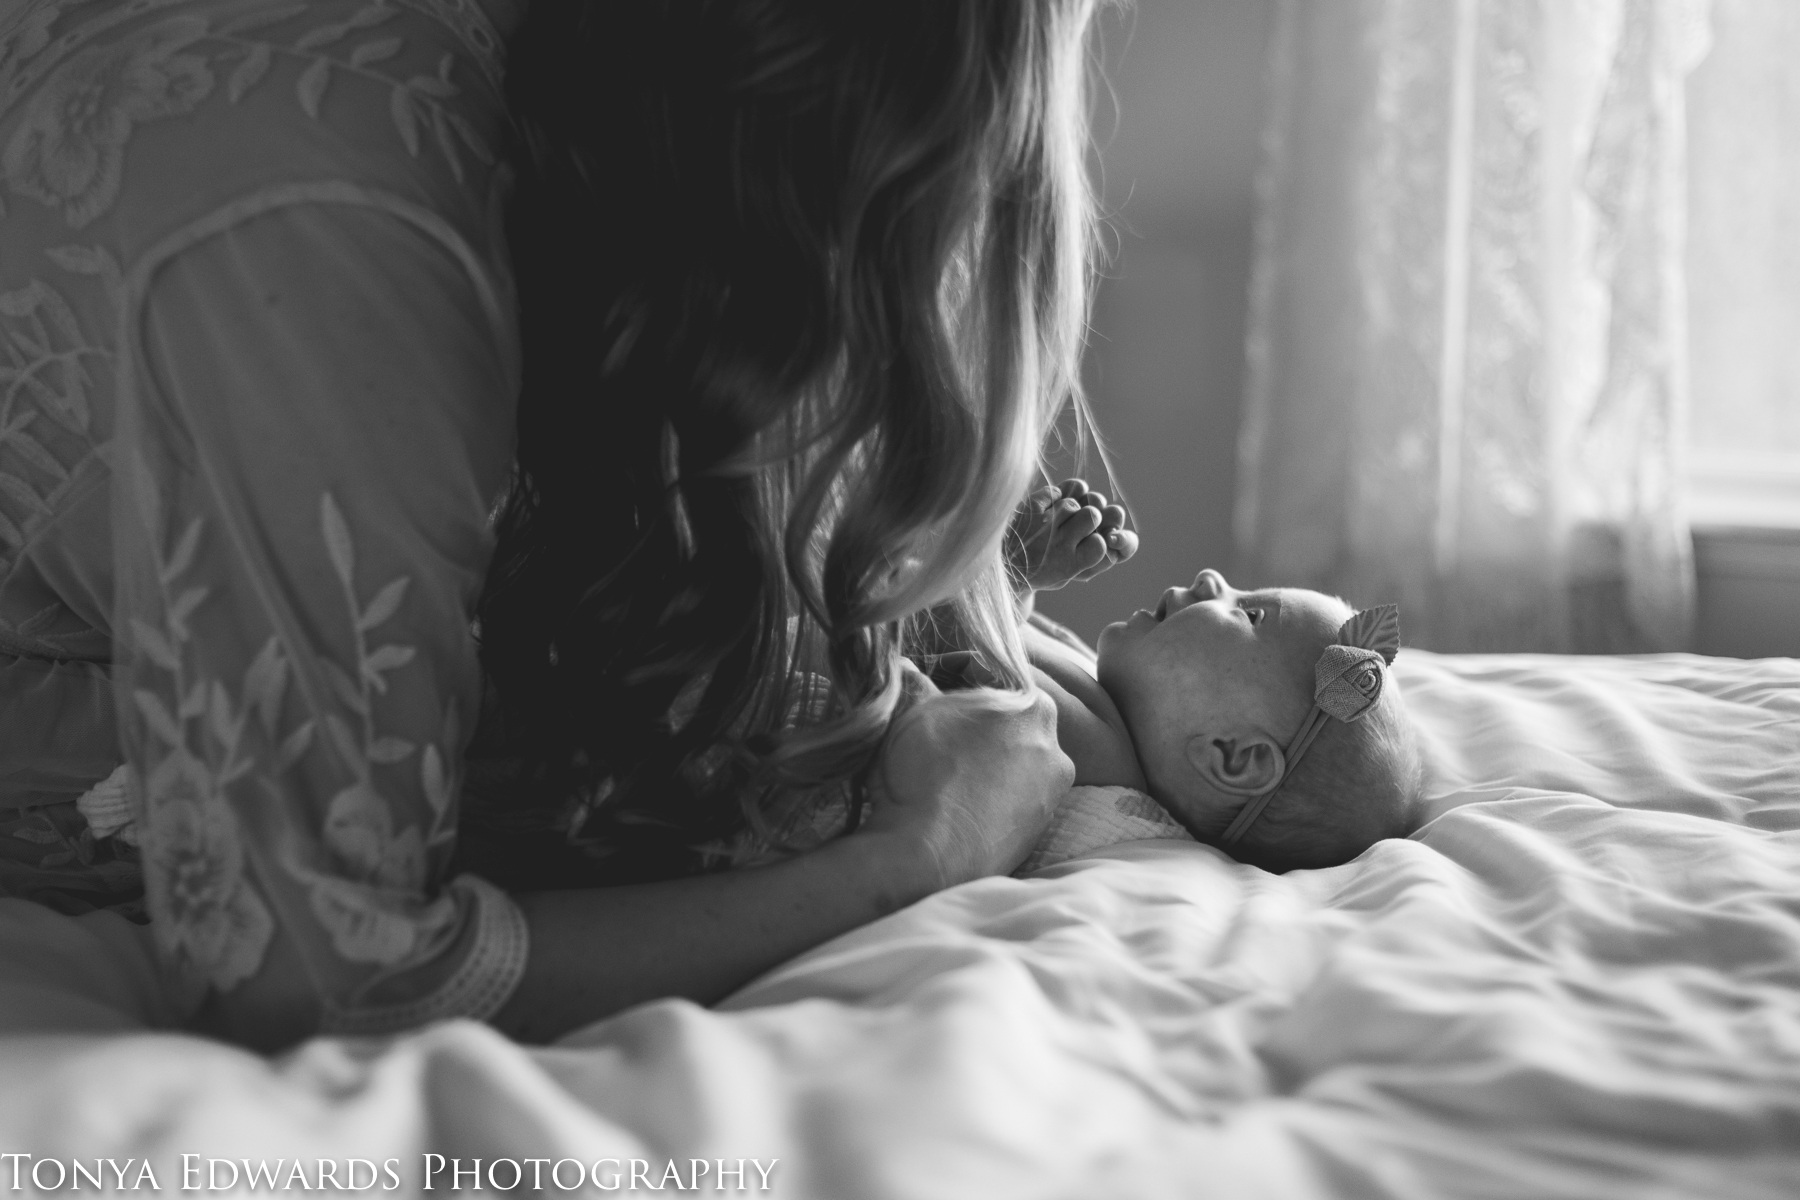 Tonya Edwards | Oroville Photographer | mother with long blond hair laying on bed playing with newborn baby girl in window backlight in black & white